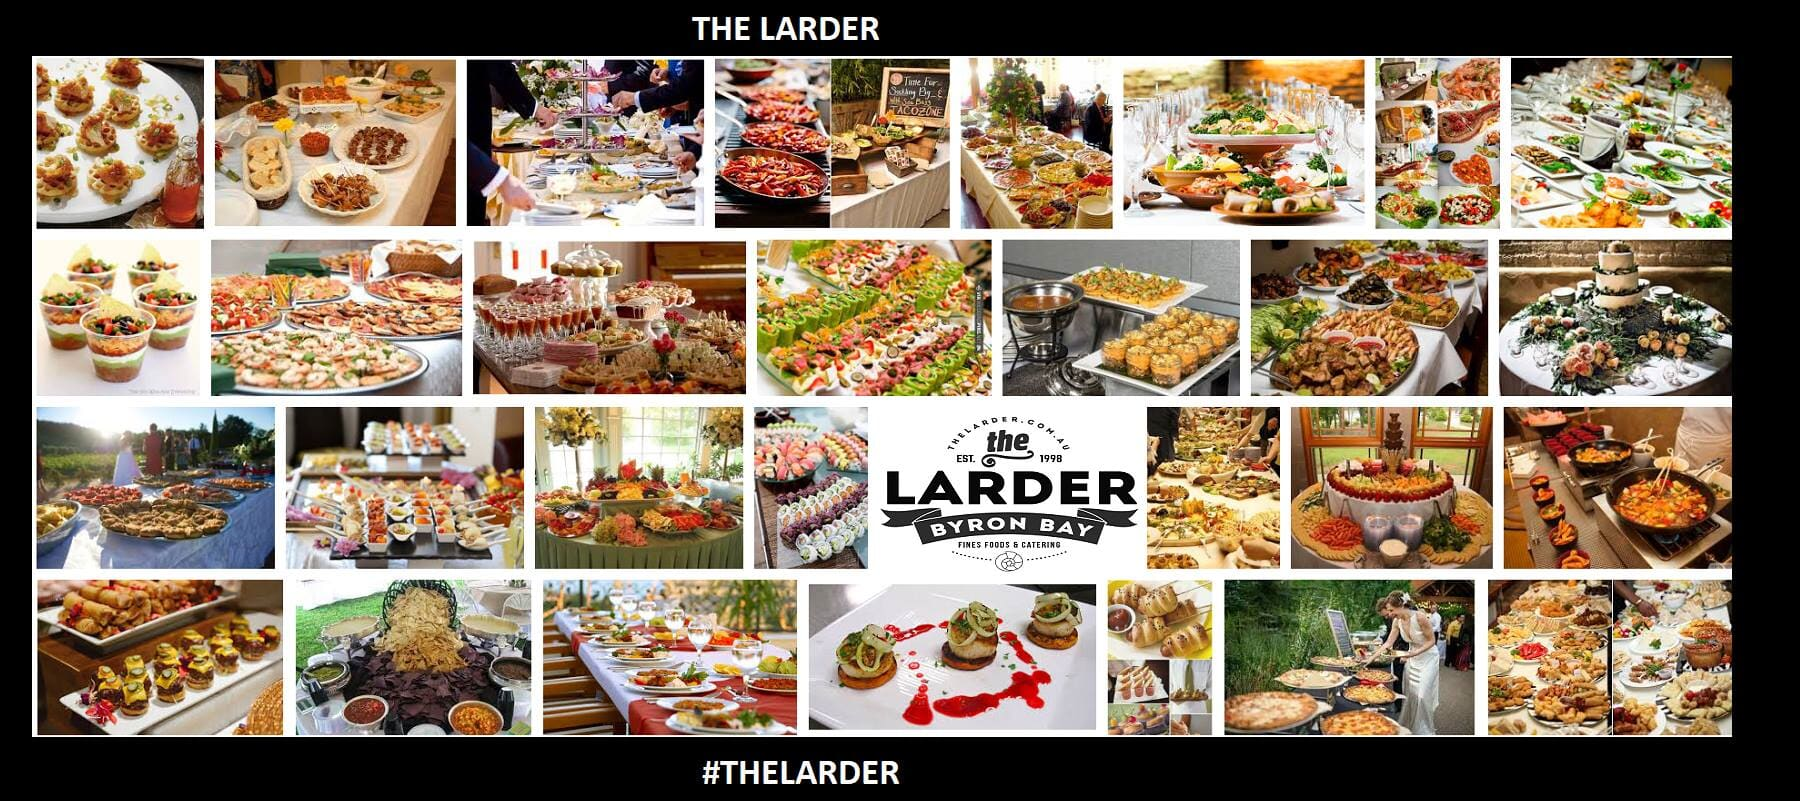 Charles at The Larder Prestige Catering